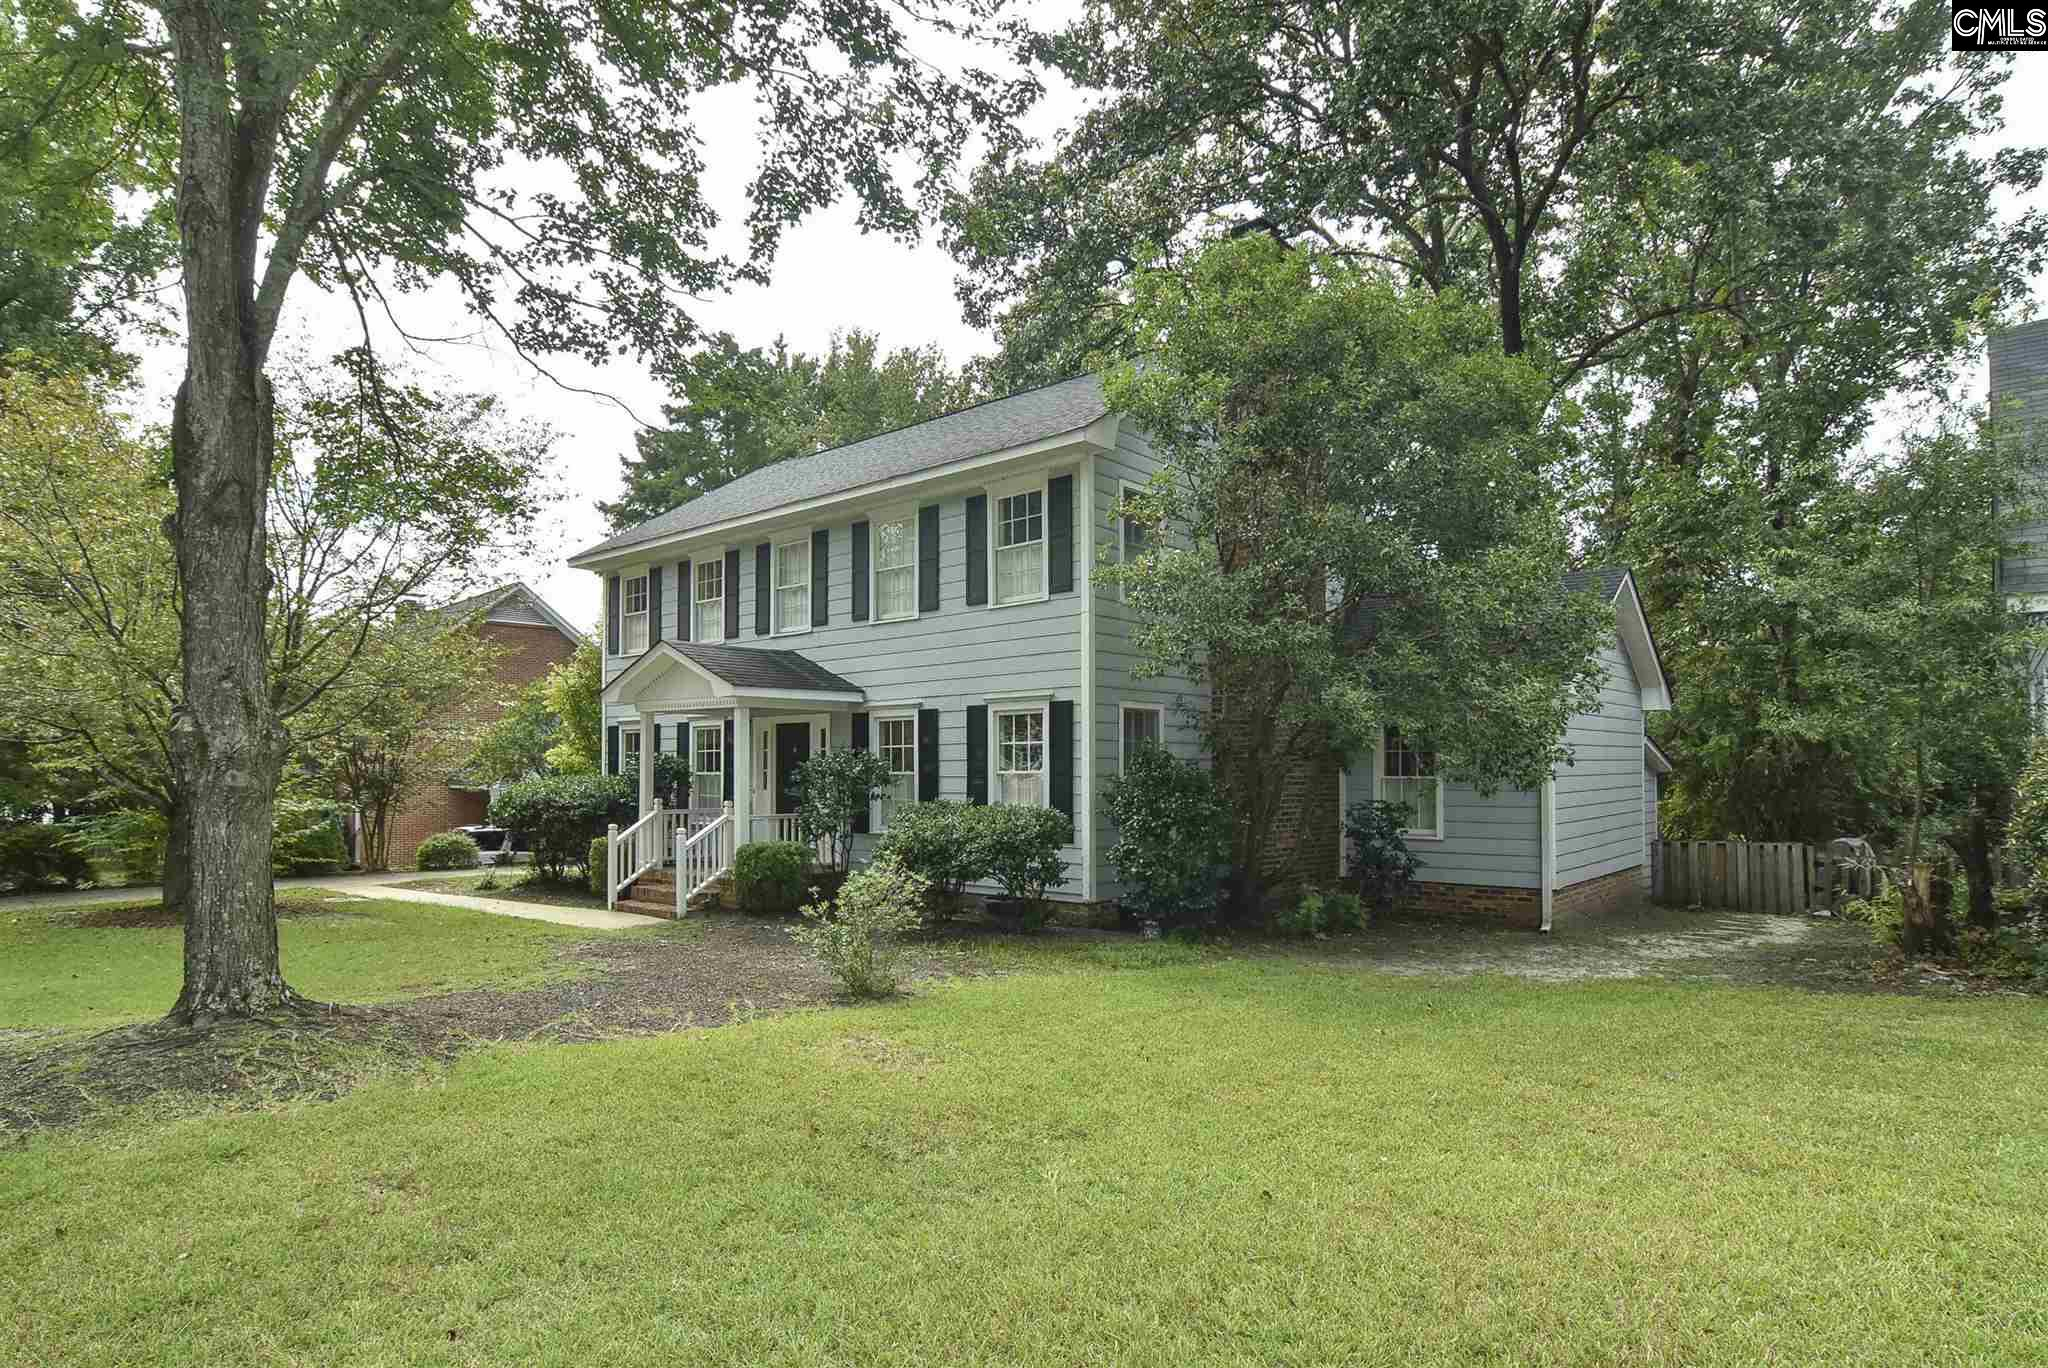 112 Chimney Hill Columbia, SC 29209